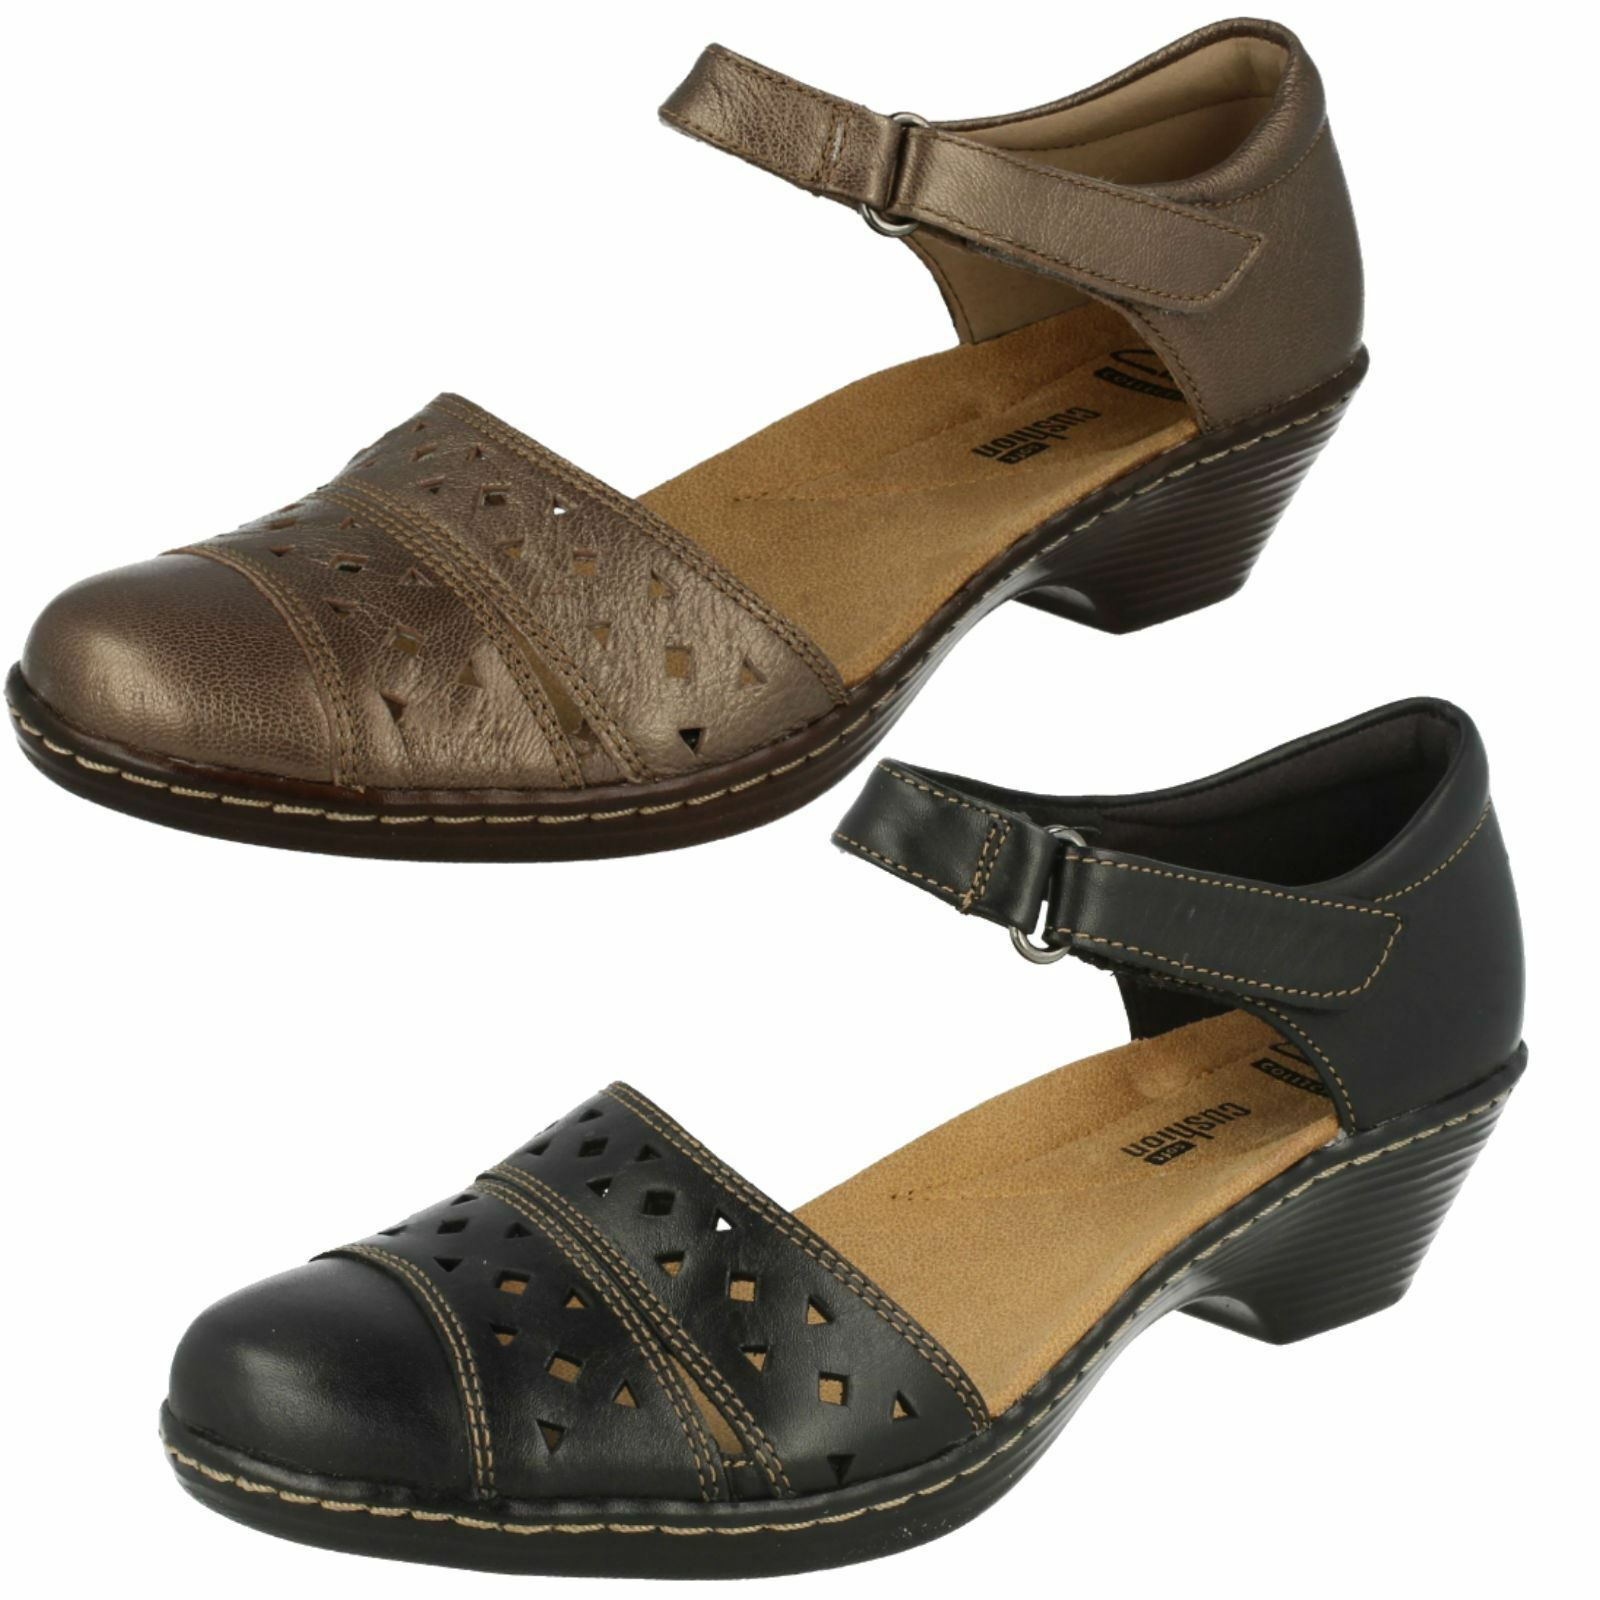 Mujer Clarks Zapatos - WENDY LAUREL